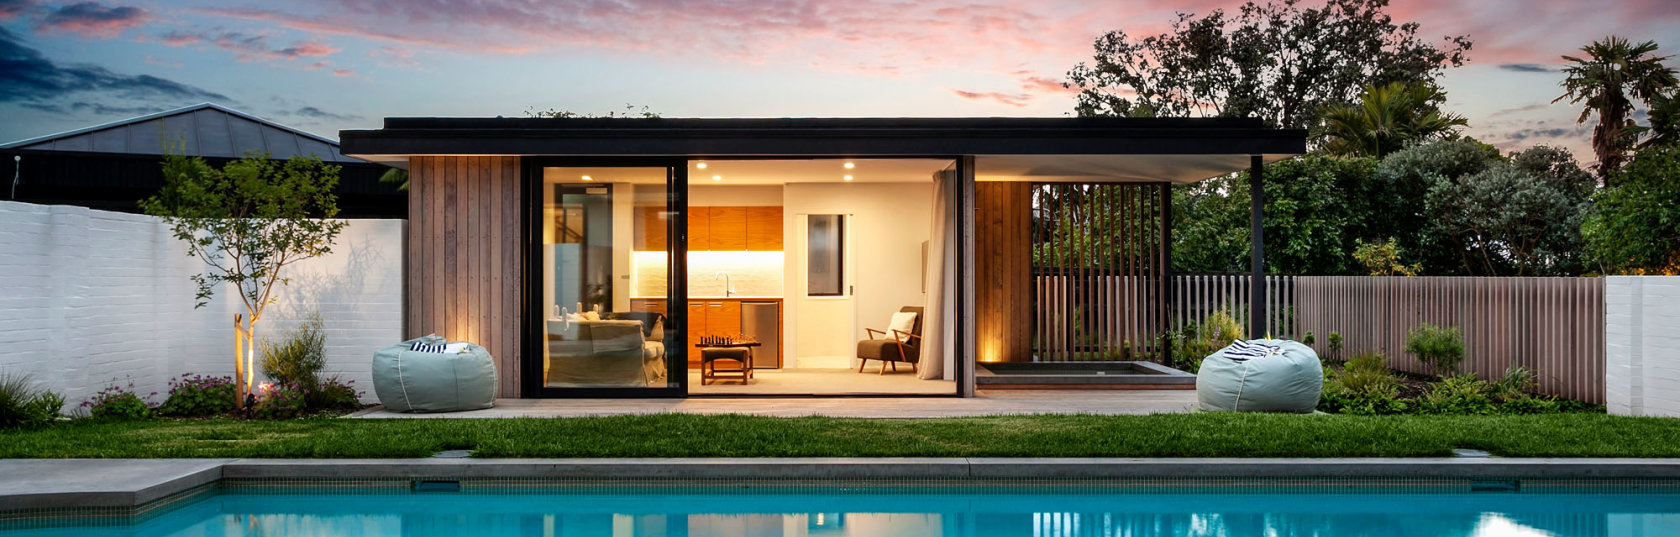 Top Pool Design Ideas What To Consider When Building A Swimming Pool Outdoor And Landscaping Nz